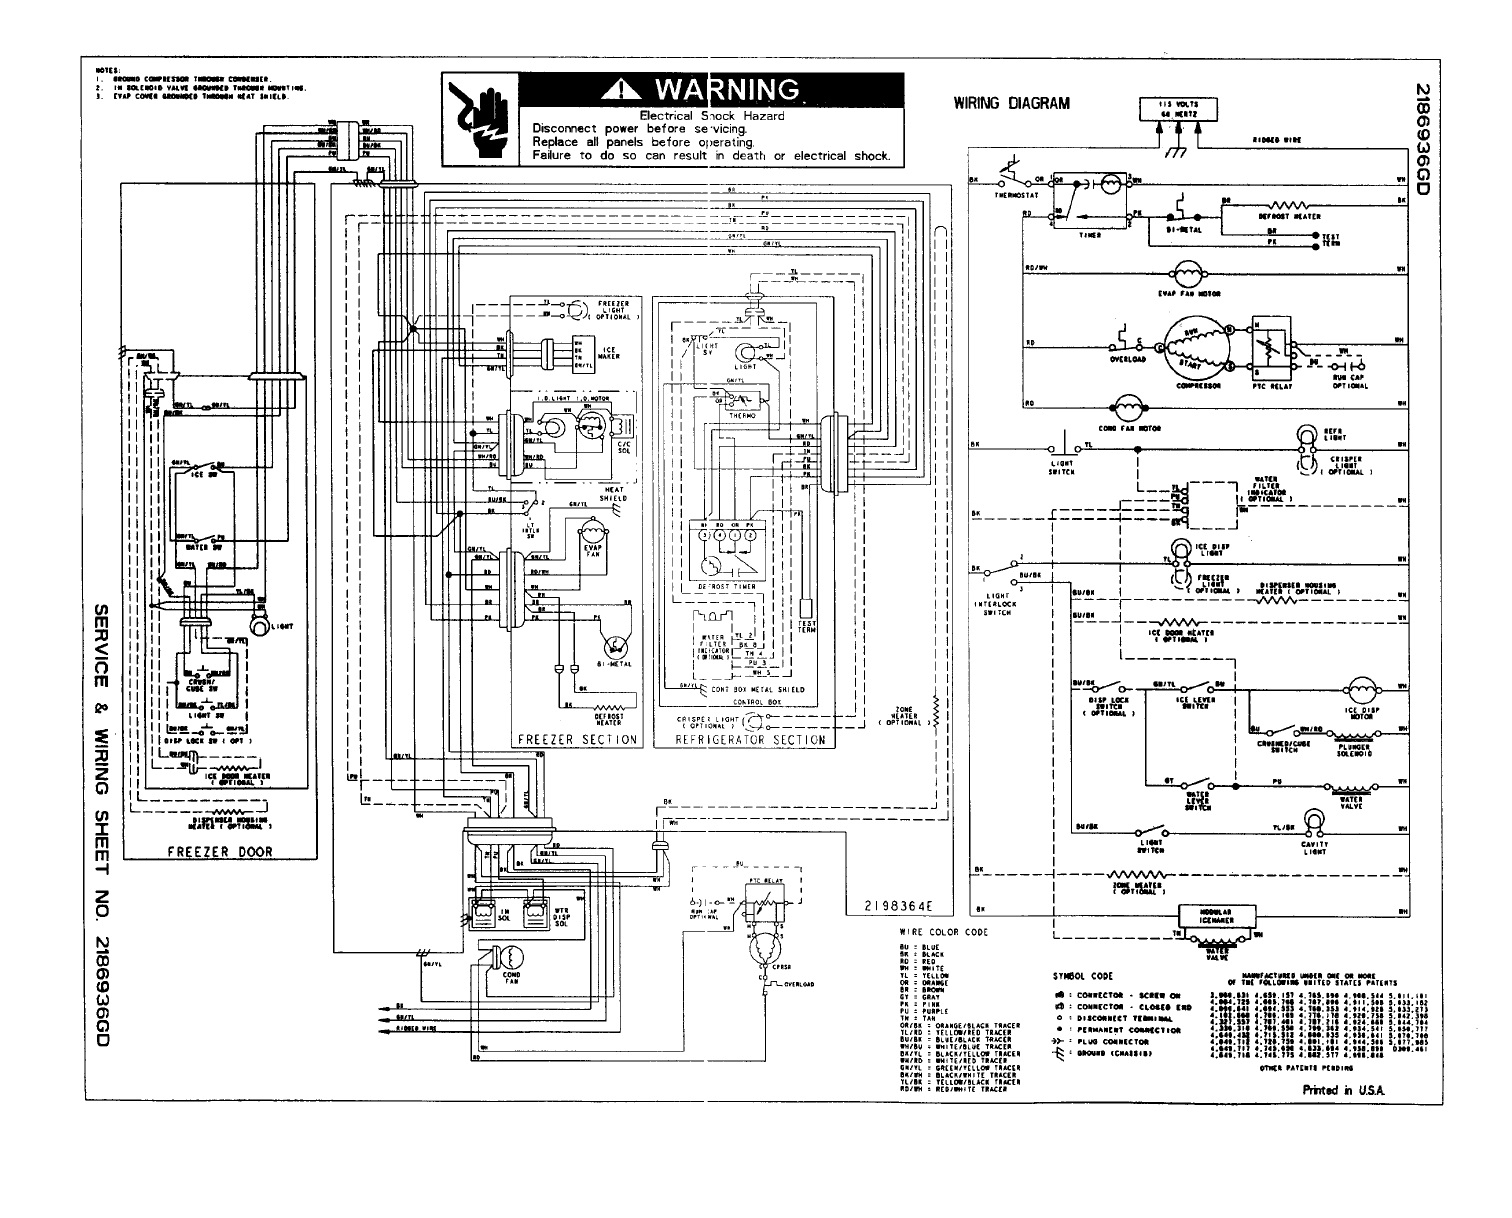 kenmore refrigerator wiring diagram Download-Generous Kenmore Refrigerator  Wiring Diagram Contemporary Best Elite 11-. DOWNLOAD. Wiring Diagram ...